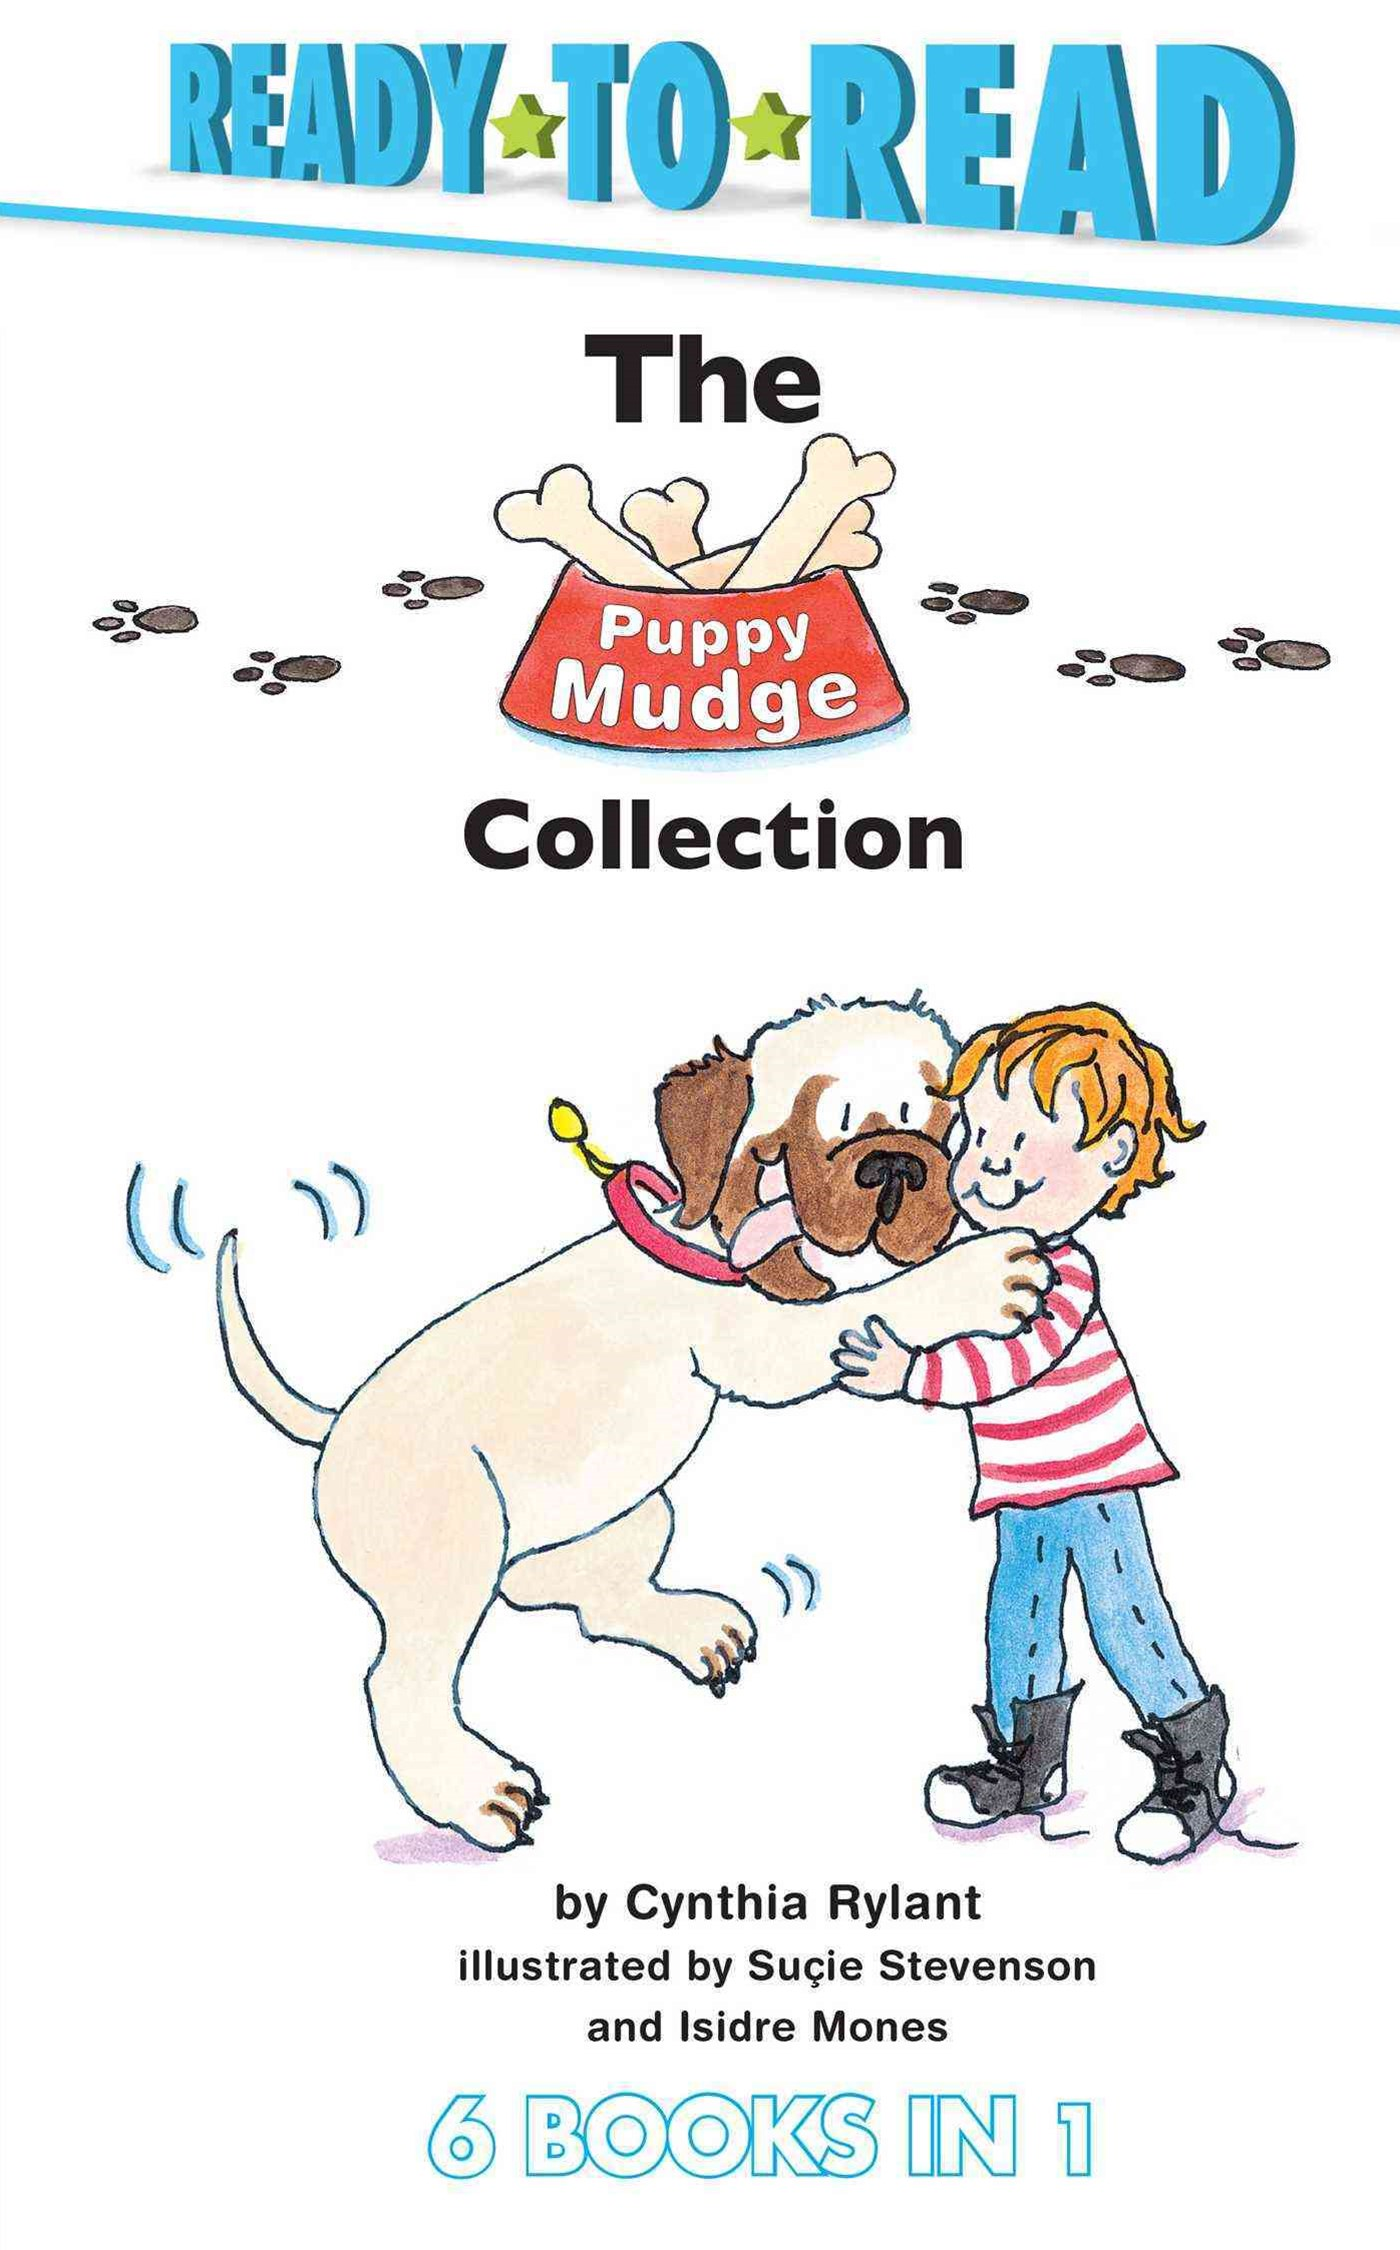 The Puppy Mudge Ready-to-Read Collection